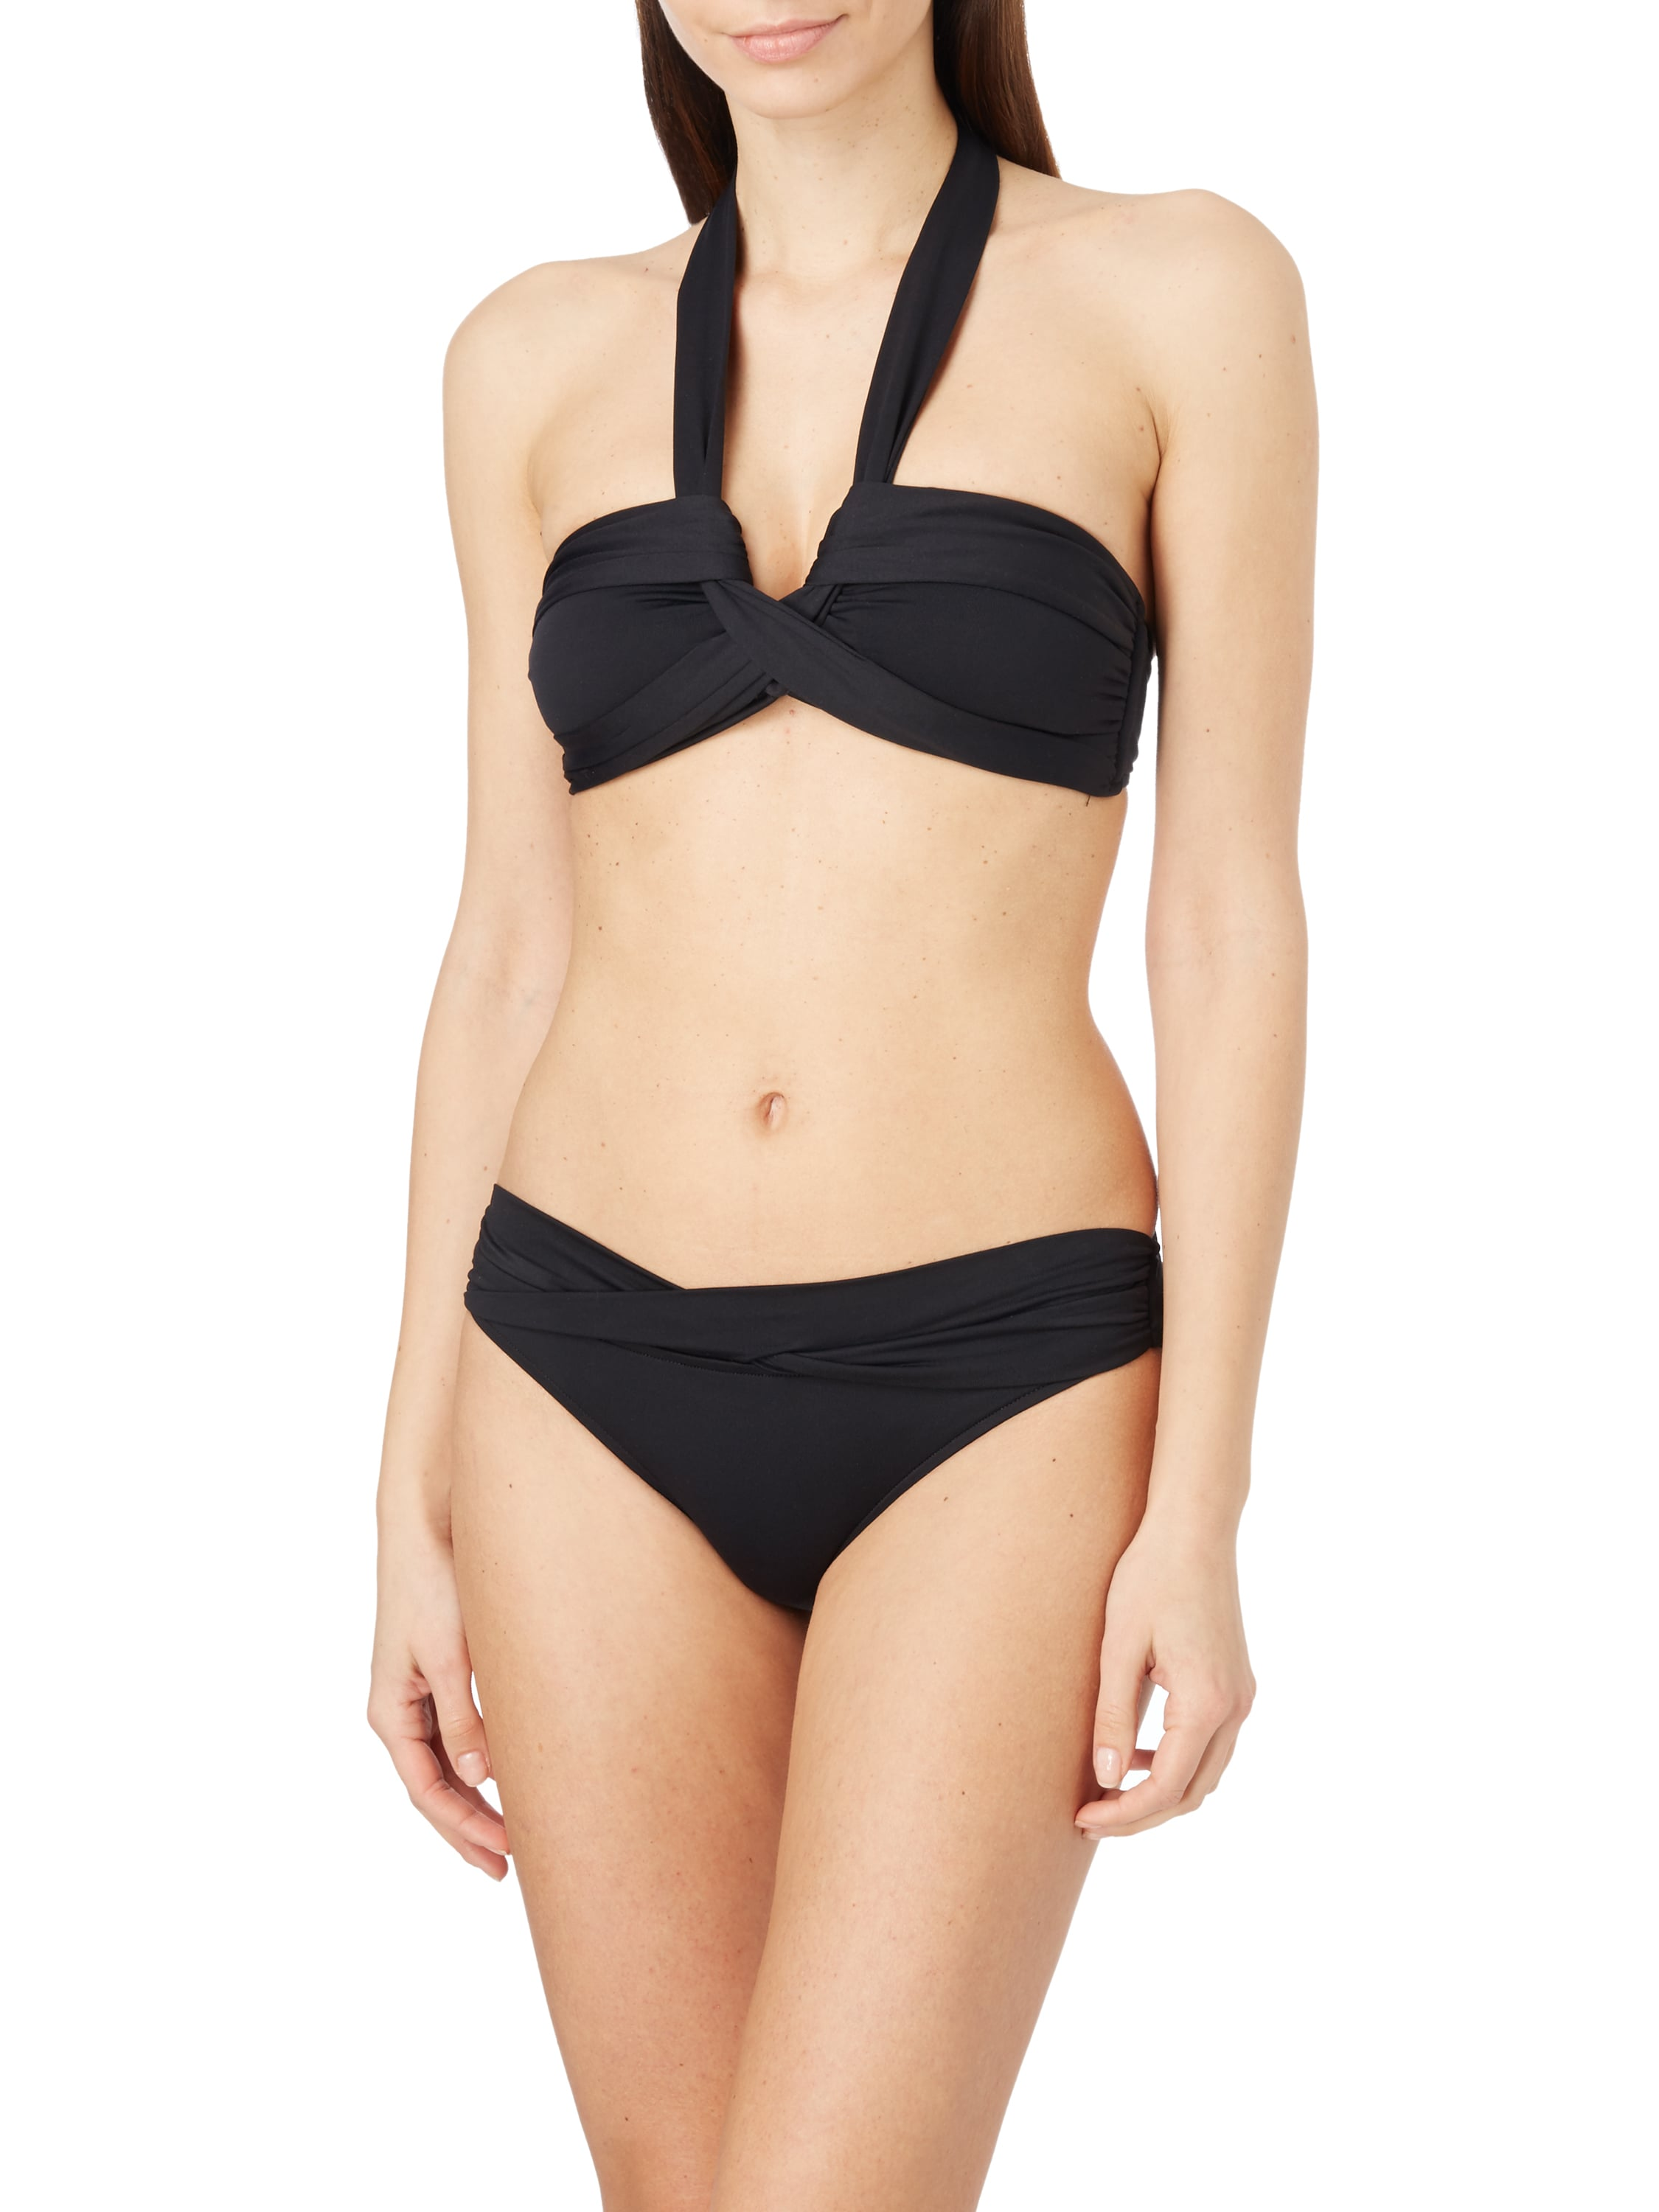 seafolly bikini oberteil mit neckholder in grau schwarz. Black Bedroom Furniture Sets. Home Design Ideas